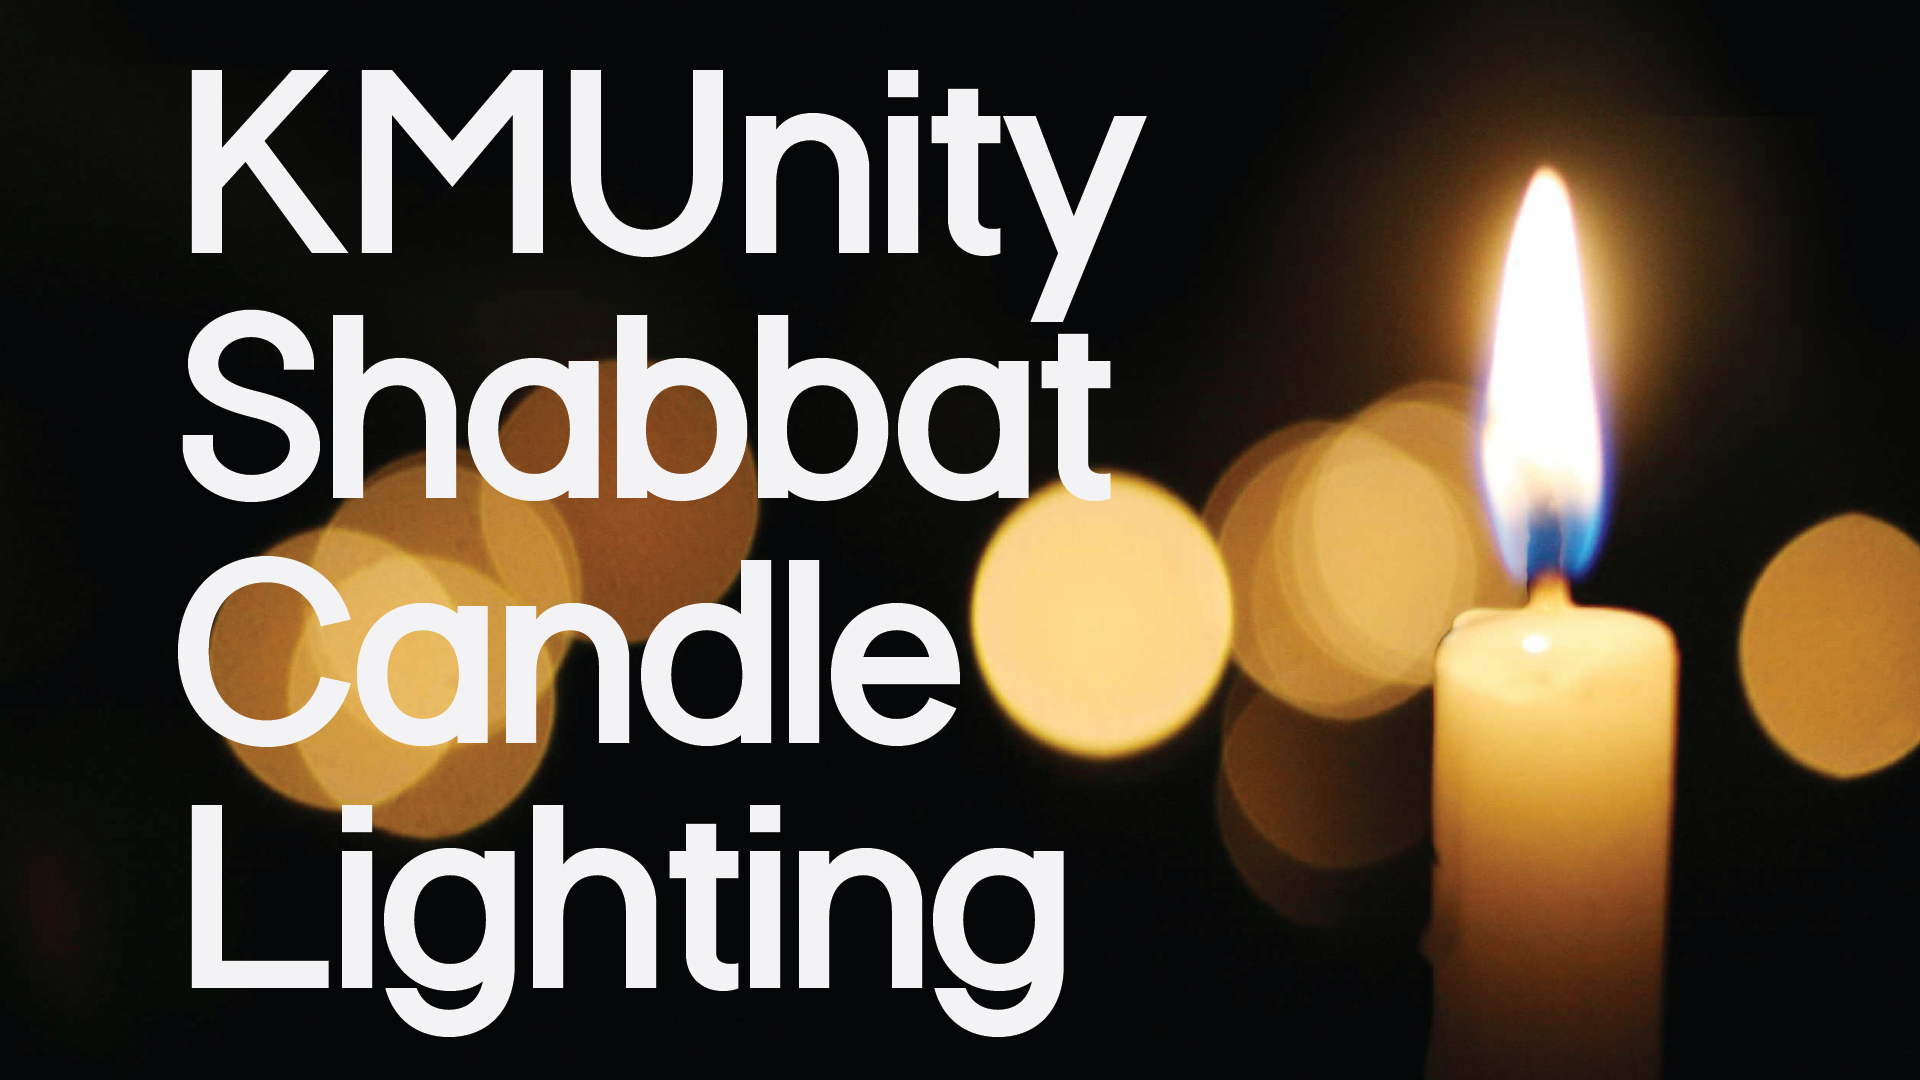 Shabbat Candle Lighting